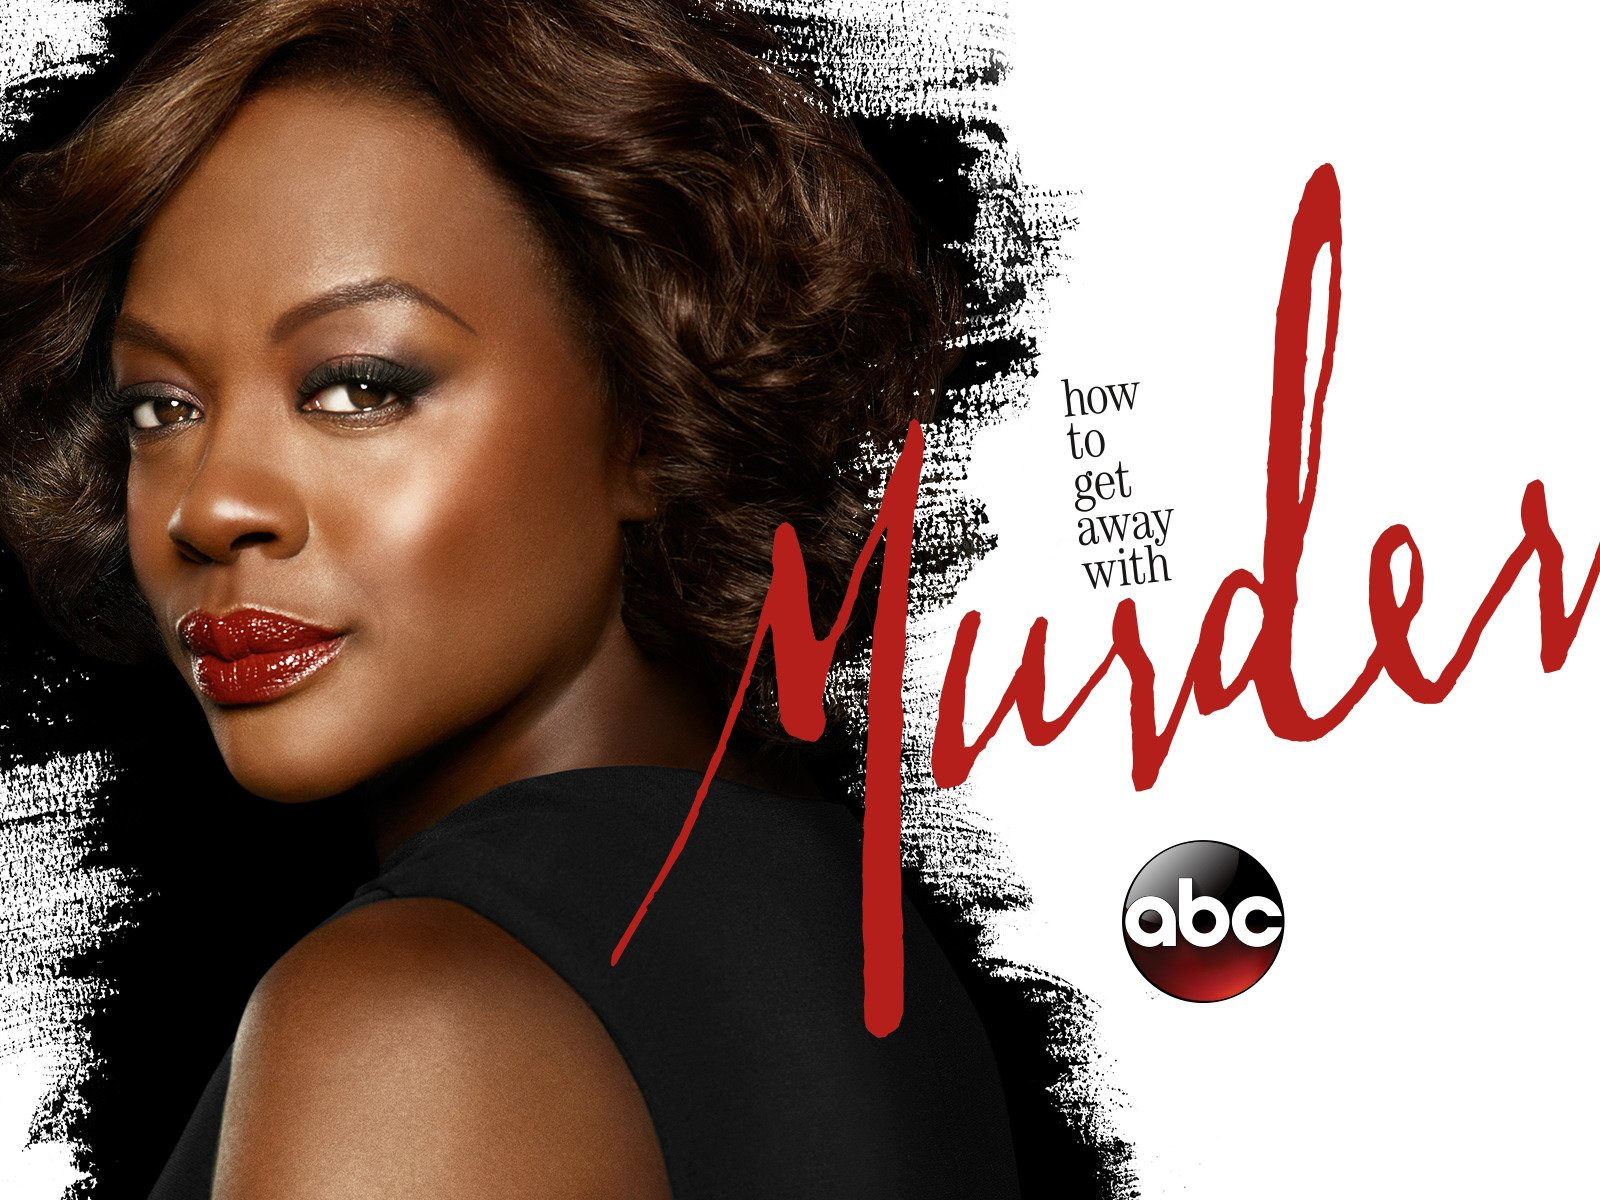 Amazon how to get away with murder season 3 amazon digital amazon how to get away with murder season 3 amazon digital services llc ccuart Images